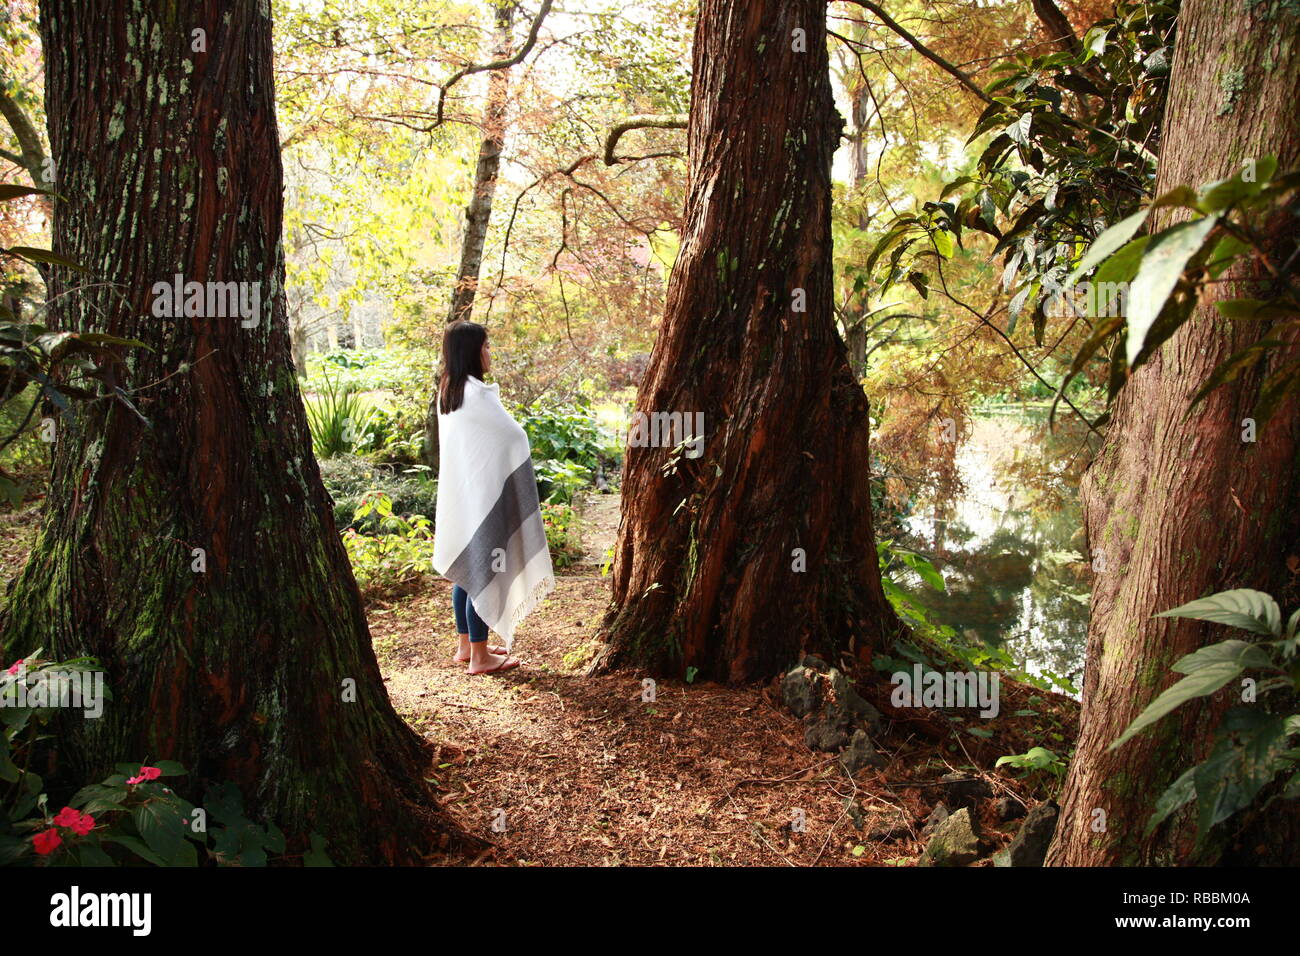 Woman among redwoods looking at nature - Stock Image